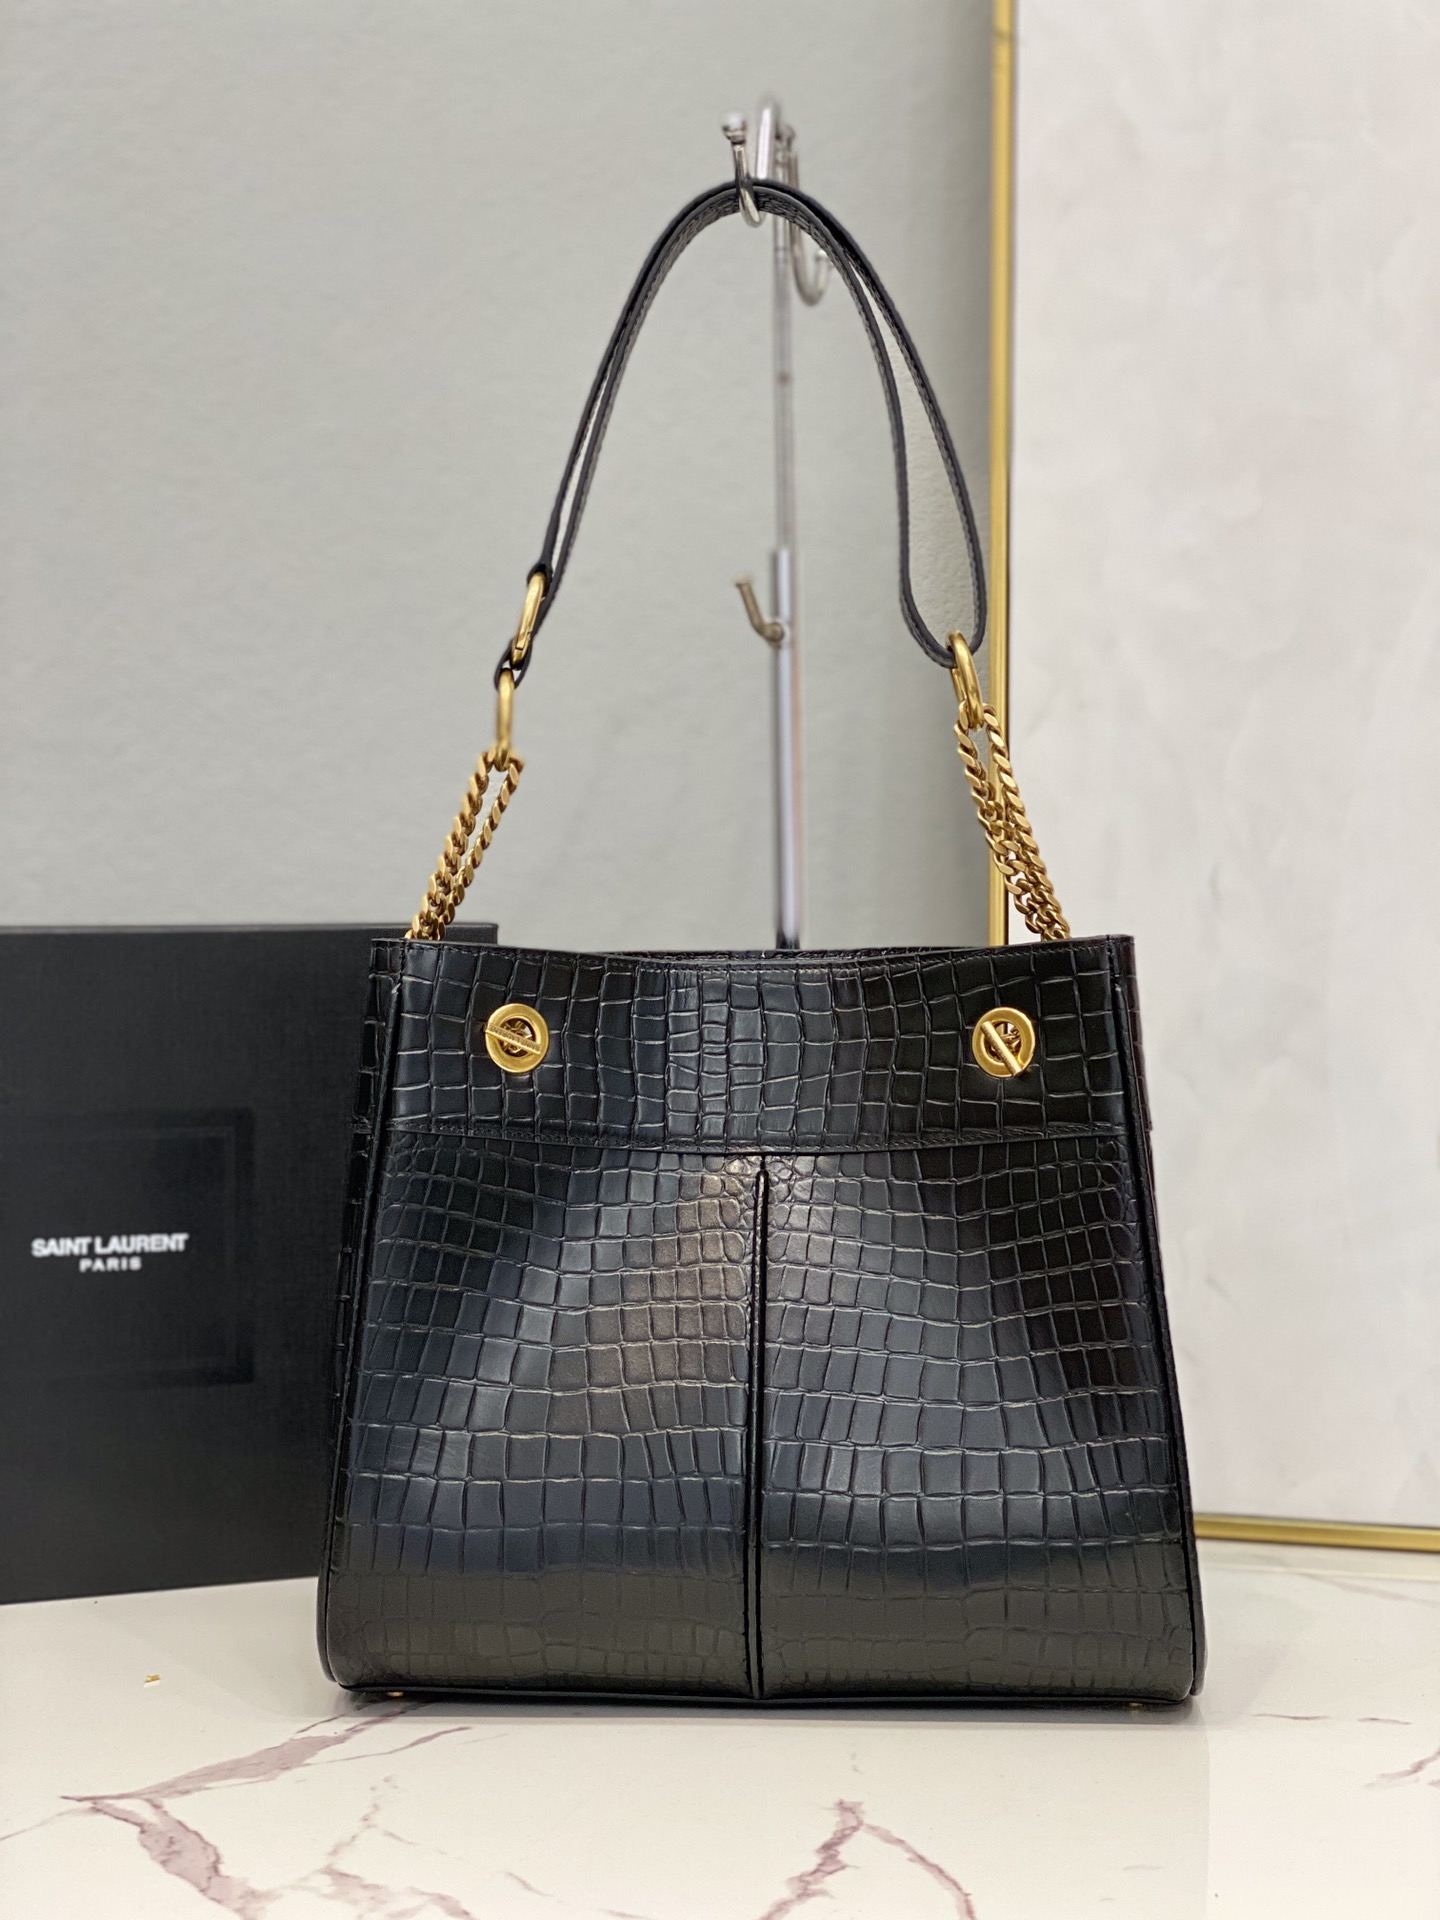 2021 saint laurent claude shopping bag in crocodile-embossed BLACK